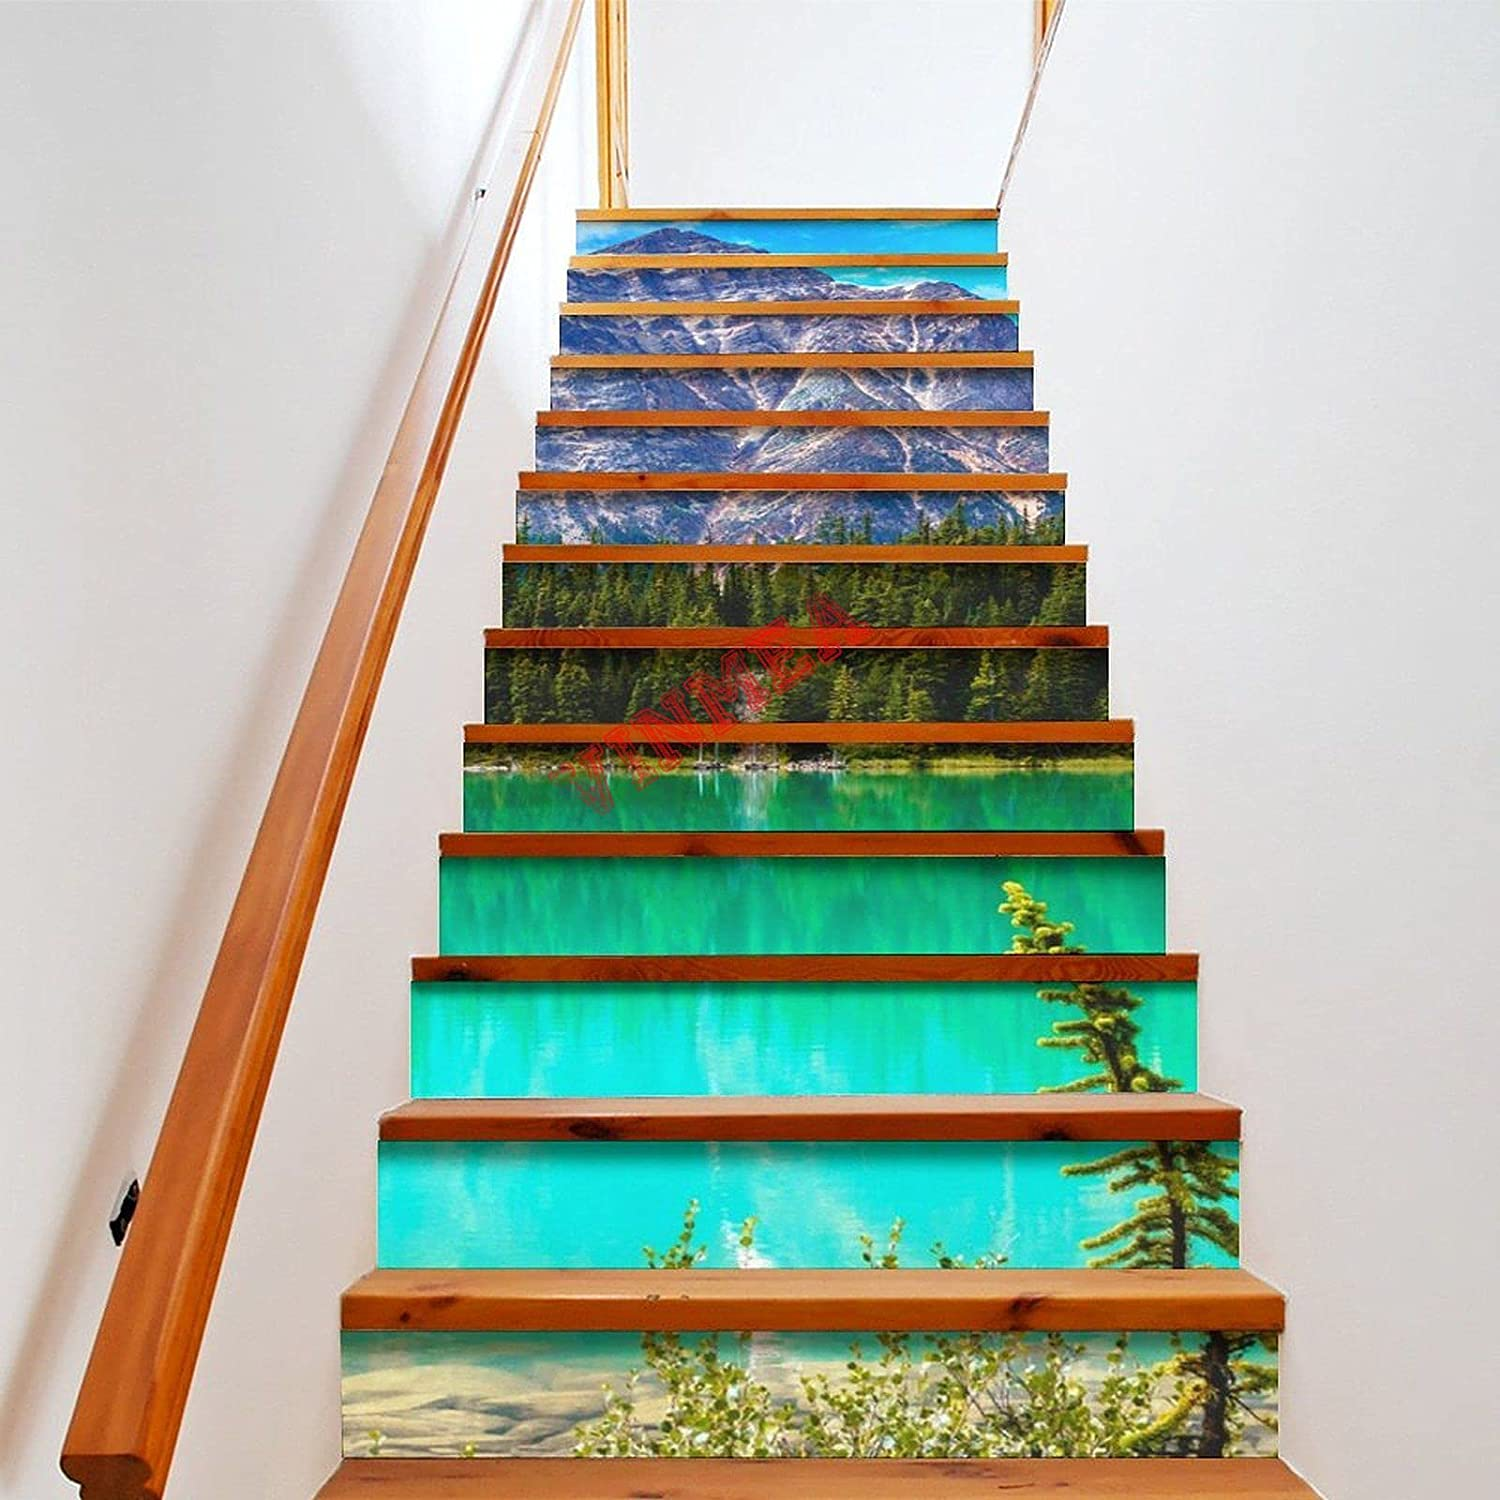 National products 3D Stairway Decal Vinyl Canadian Staircase 13pcs M Rockies10 Houston Mall DIY